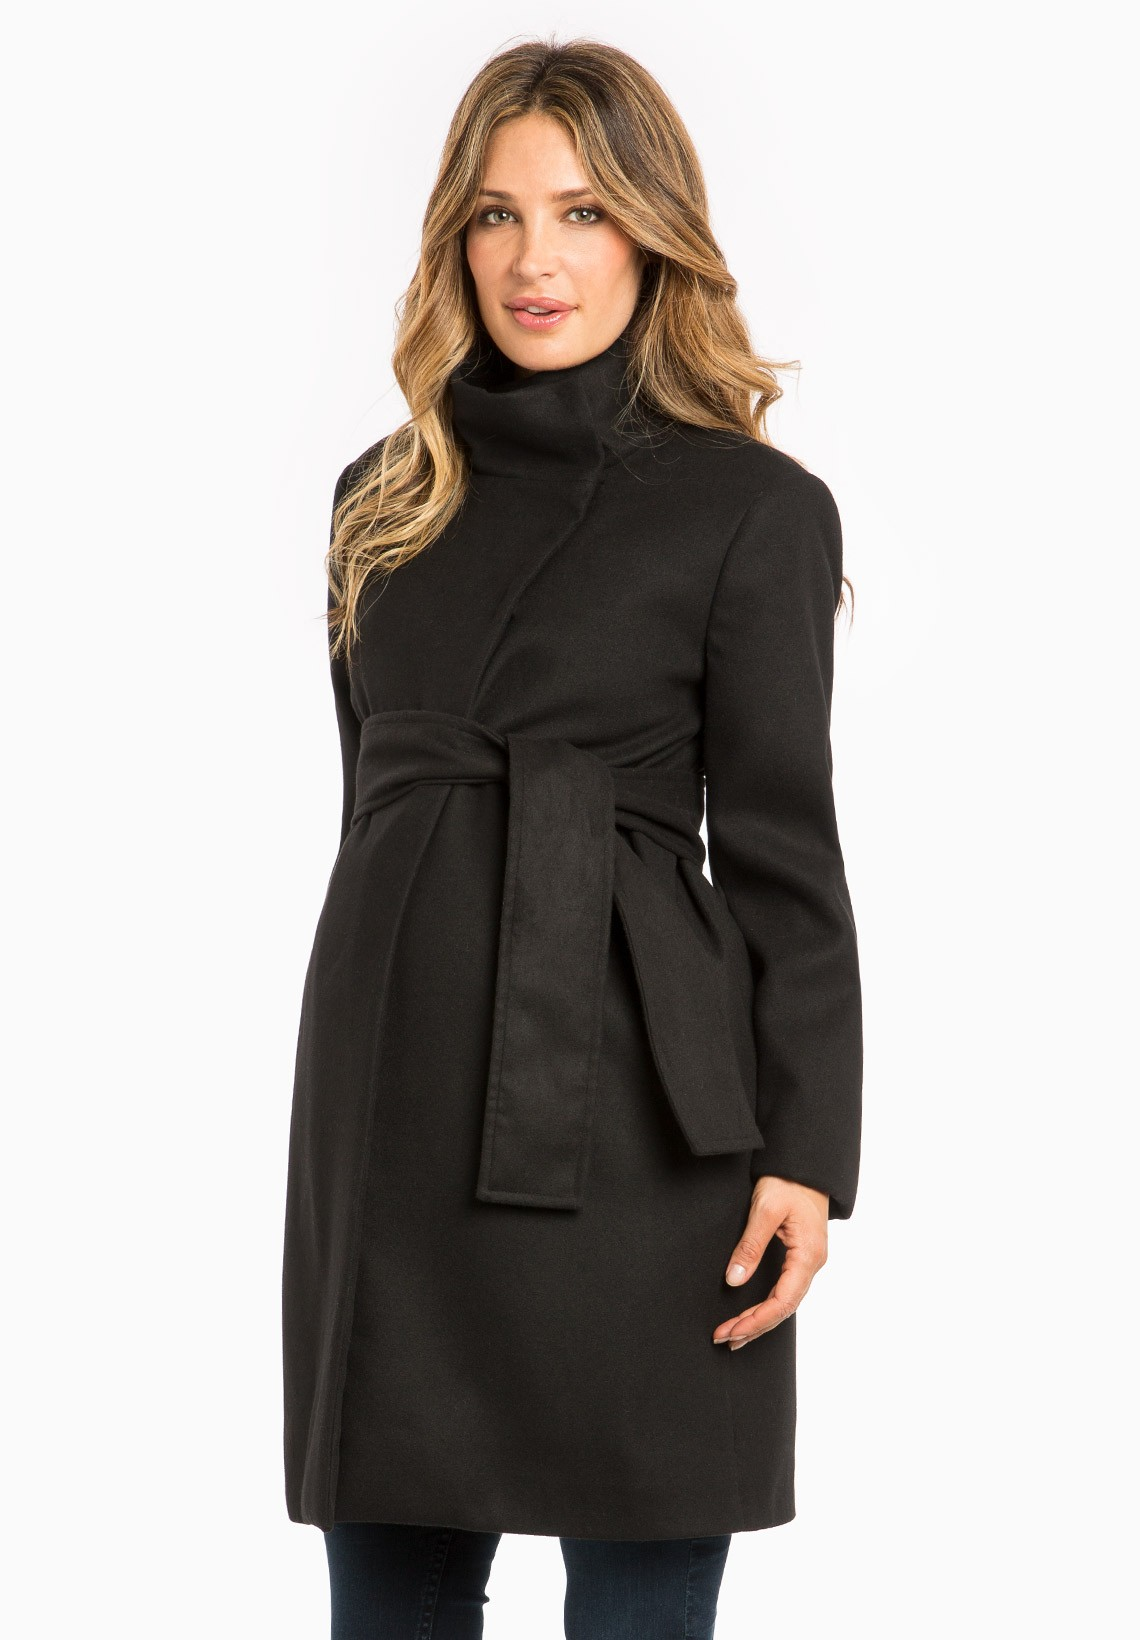 Shop for Maternity Outerwear at hamlergoodchain.ga Eligible for free shipping and free returns. Women's Turn Down Shawl Collar Check/Grid/Black Asymmetric Hemline Wool Blend Coat $ 88 00 Prime. 4 out of 5 stars Asvivid. Womens Hooded Cable Knit Button Down Outwear Fleece Sweater Cardigans Coats with .